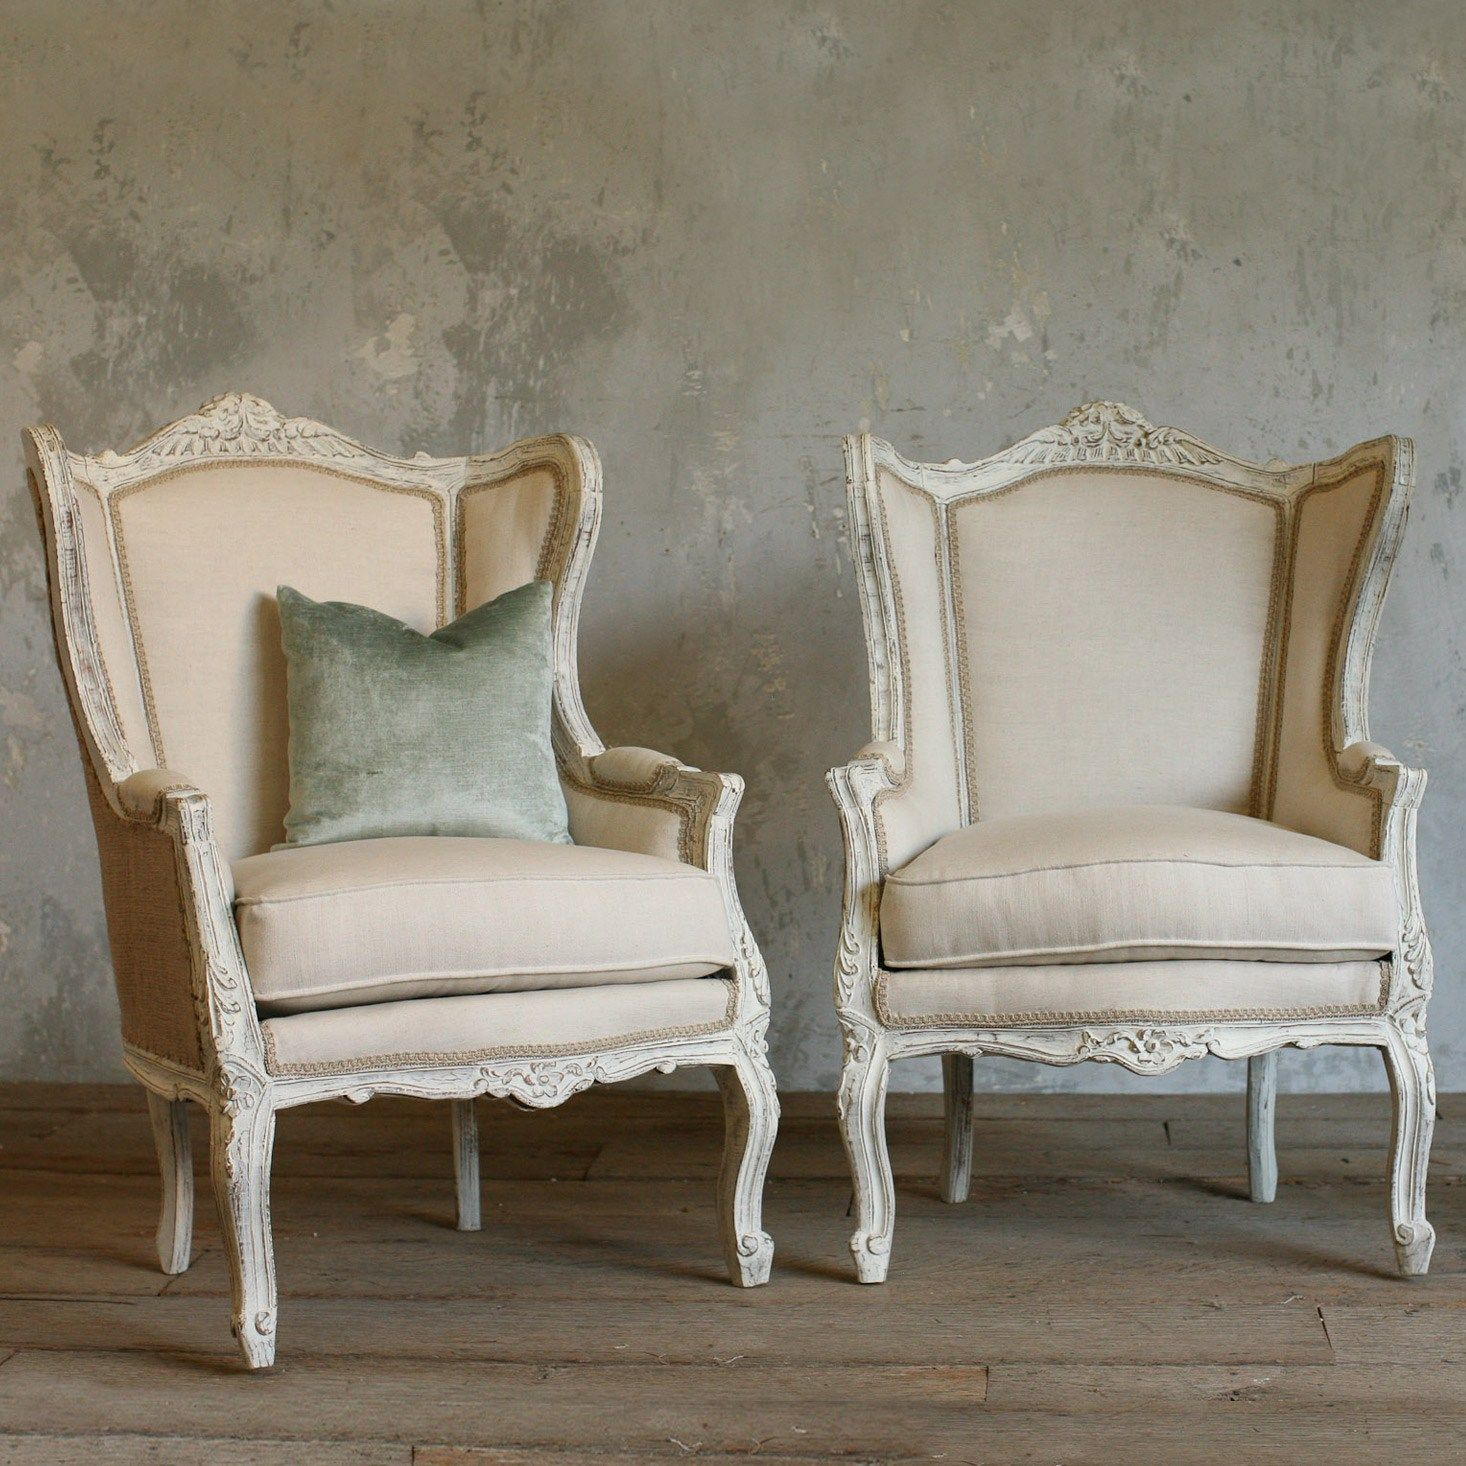 Sillas Country One Of A Kind Vintage Bergeres French Country White Set Of